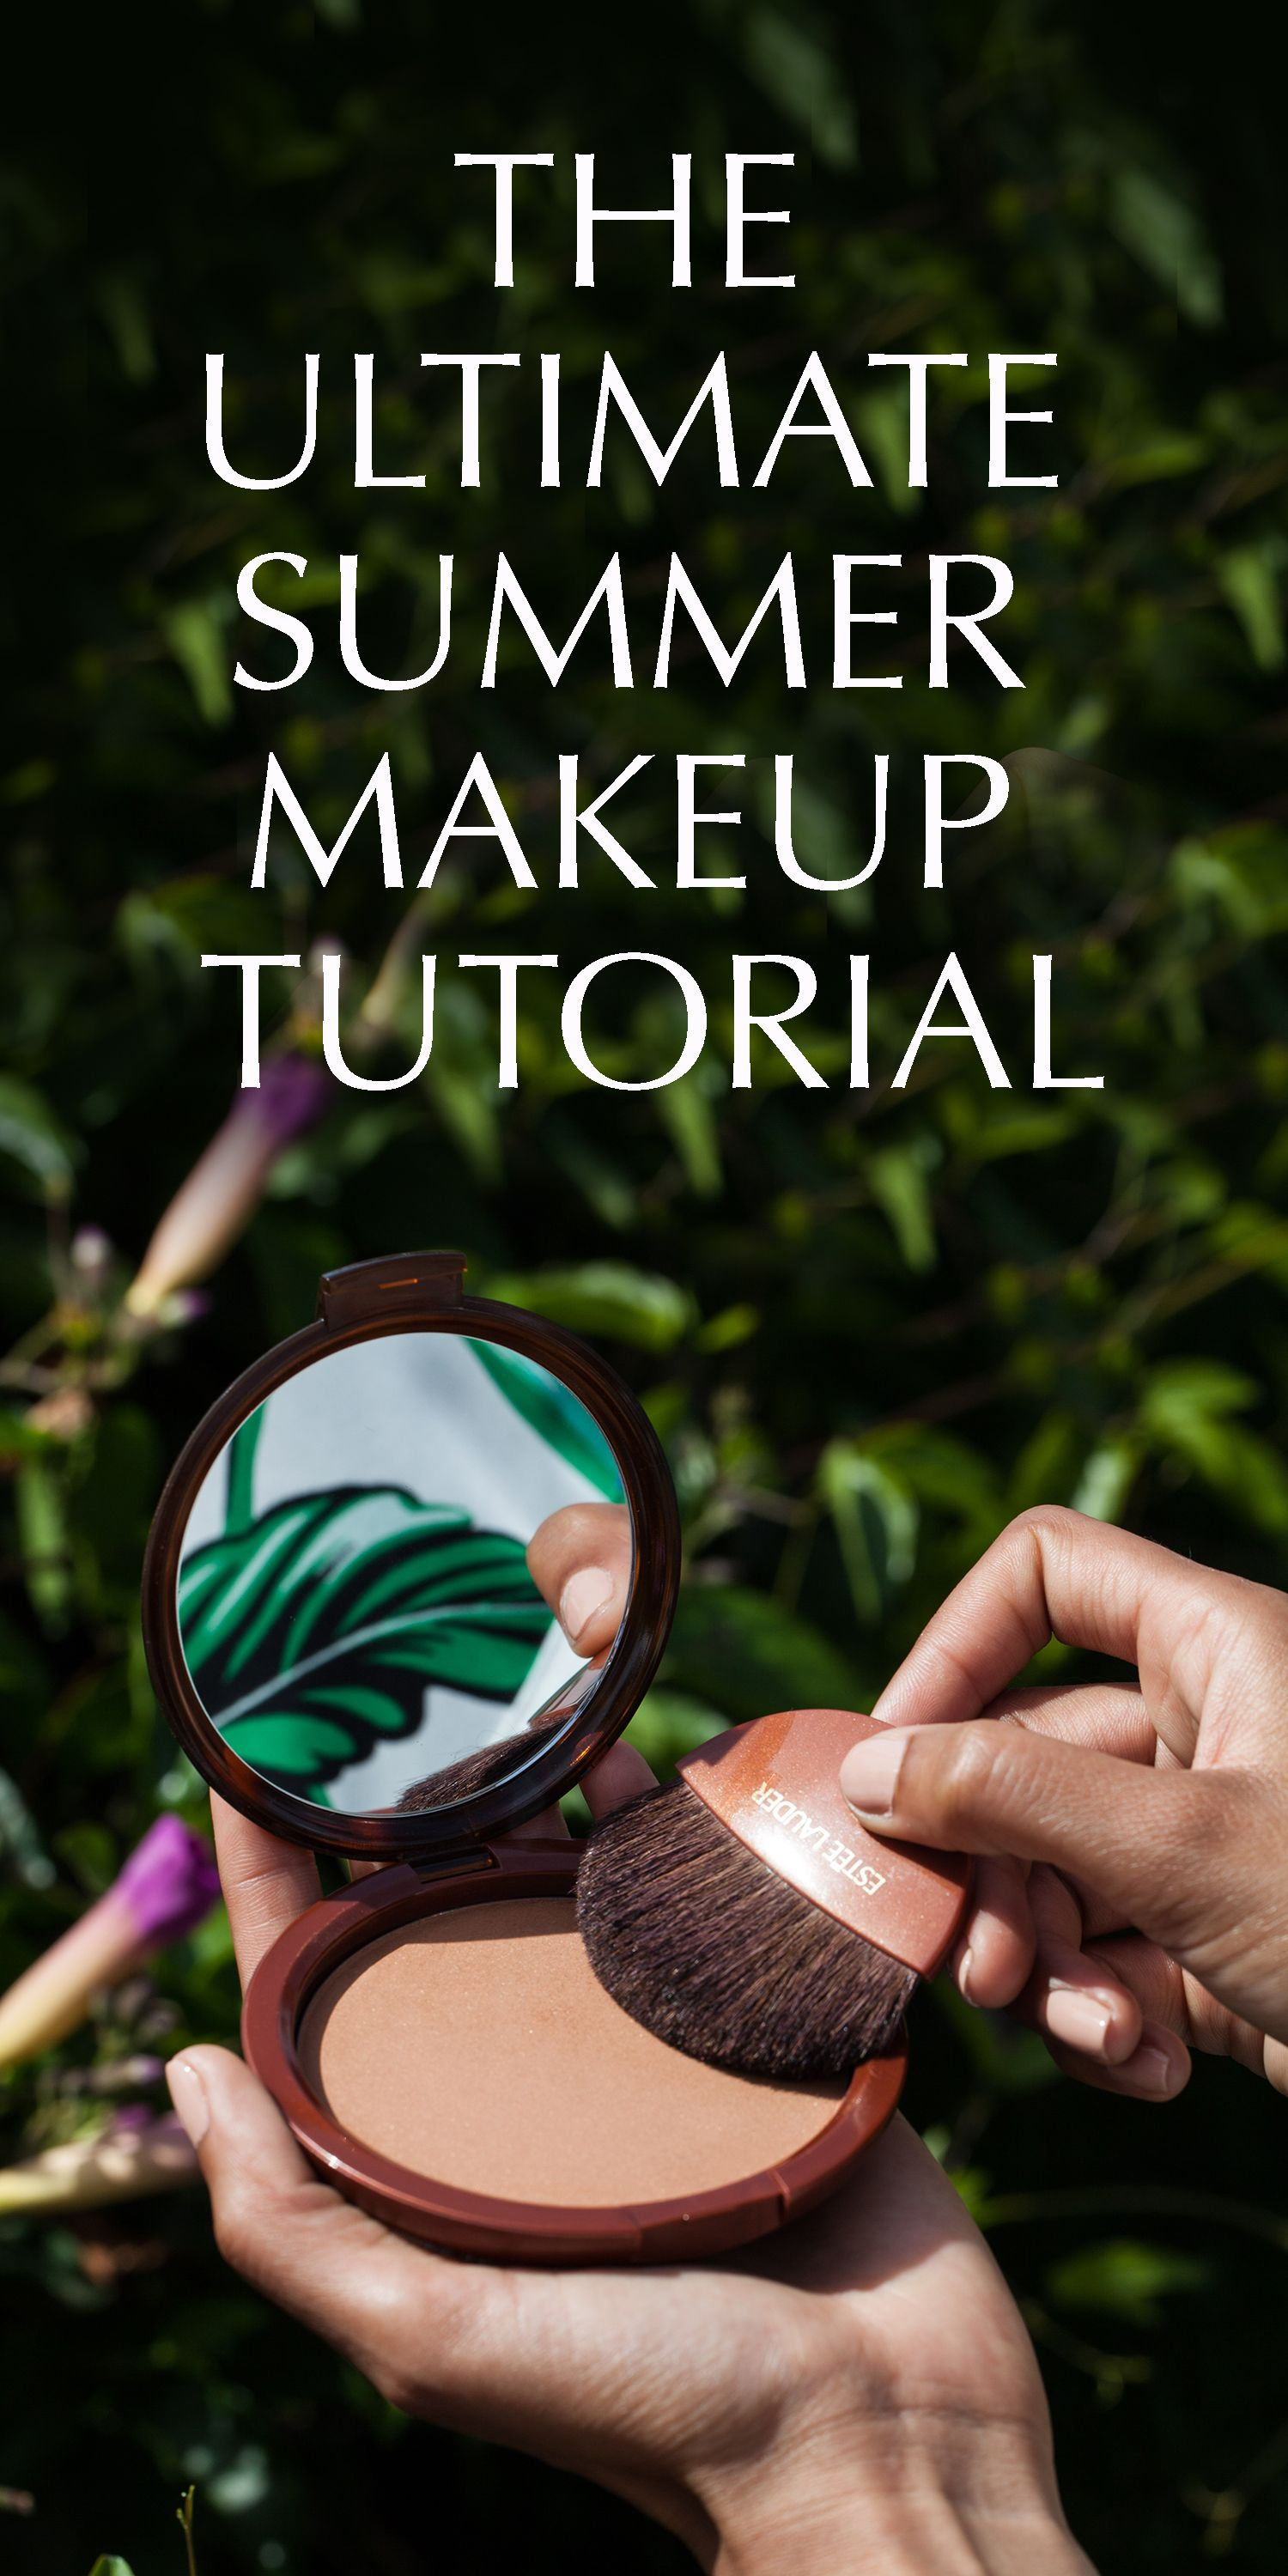 The ultimate summer makeup tutorial to transform you into